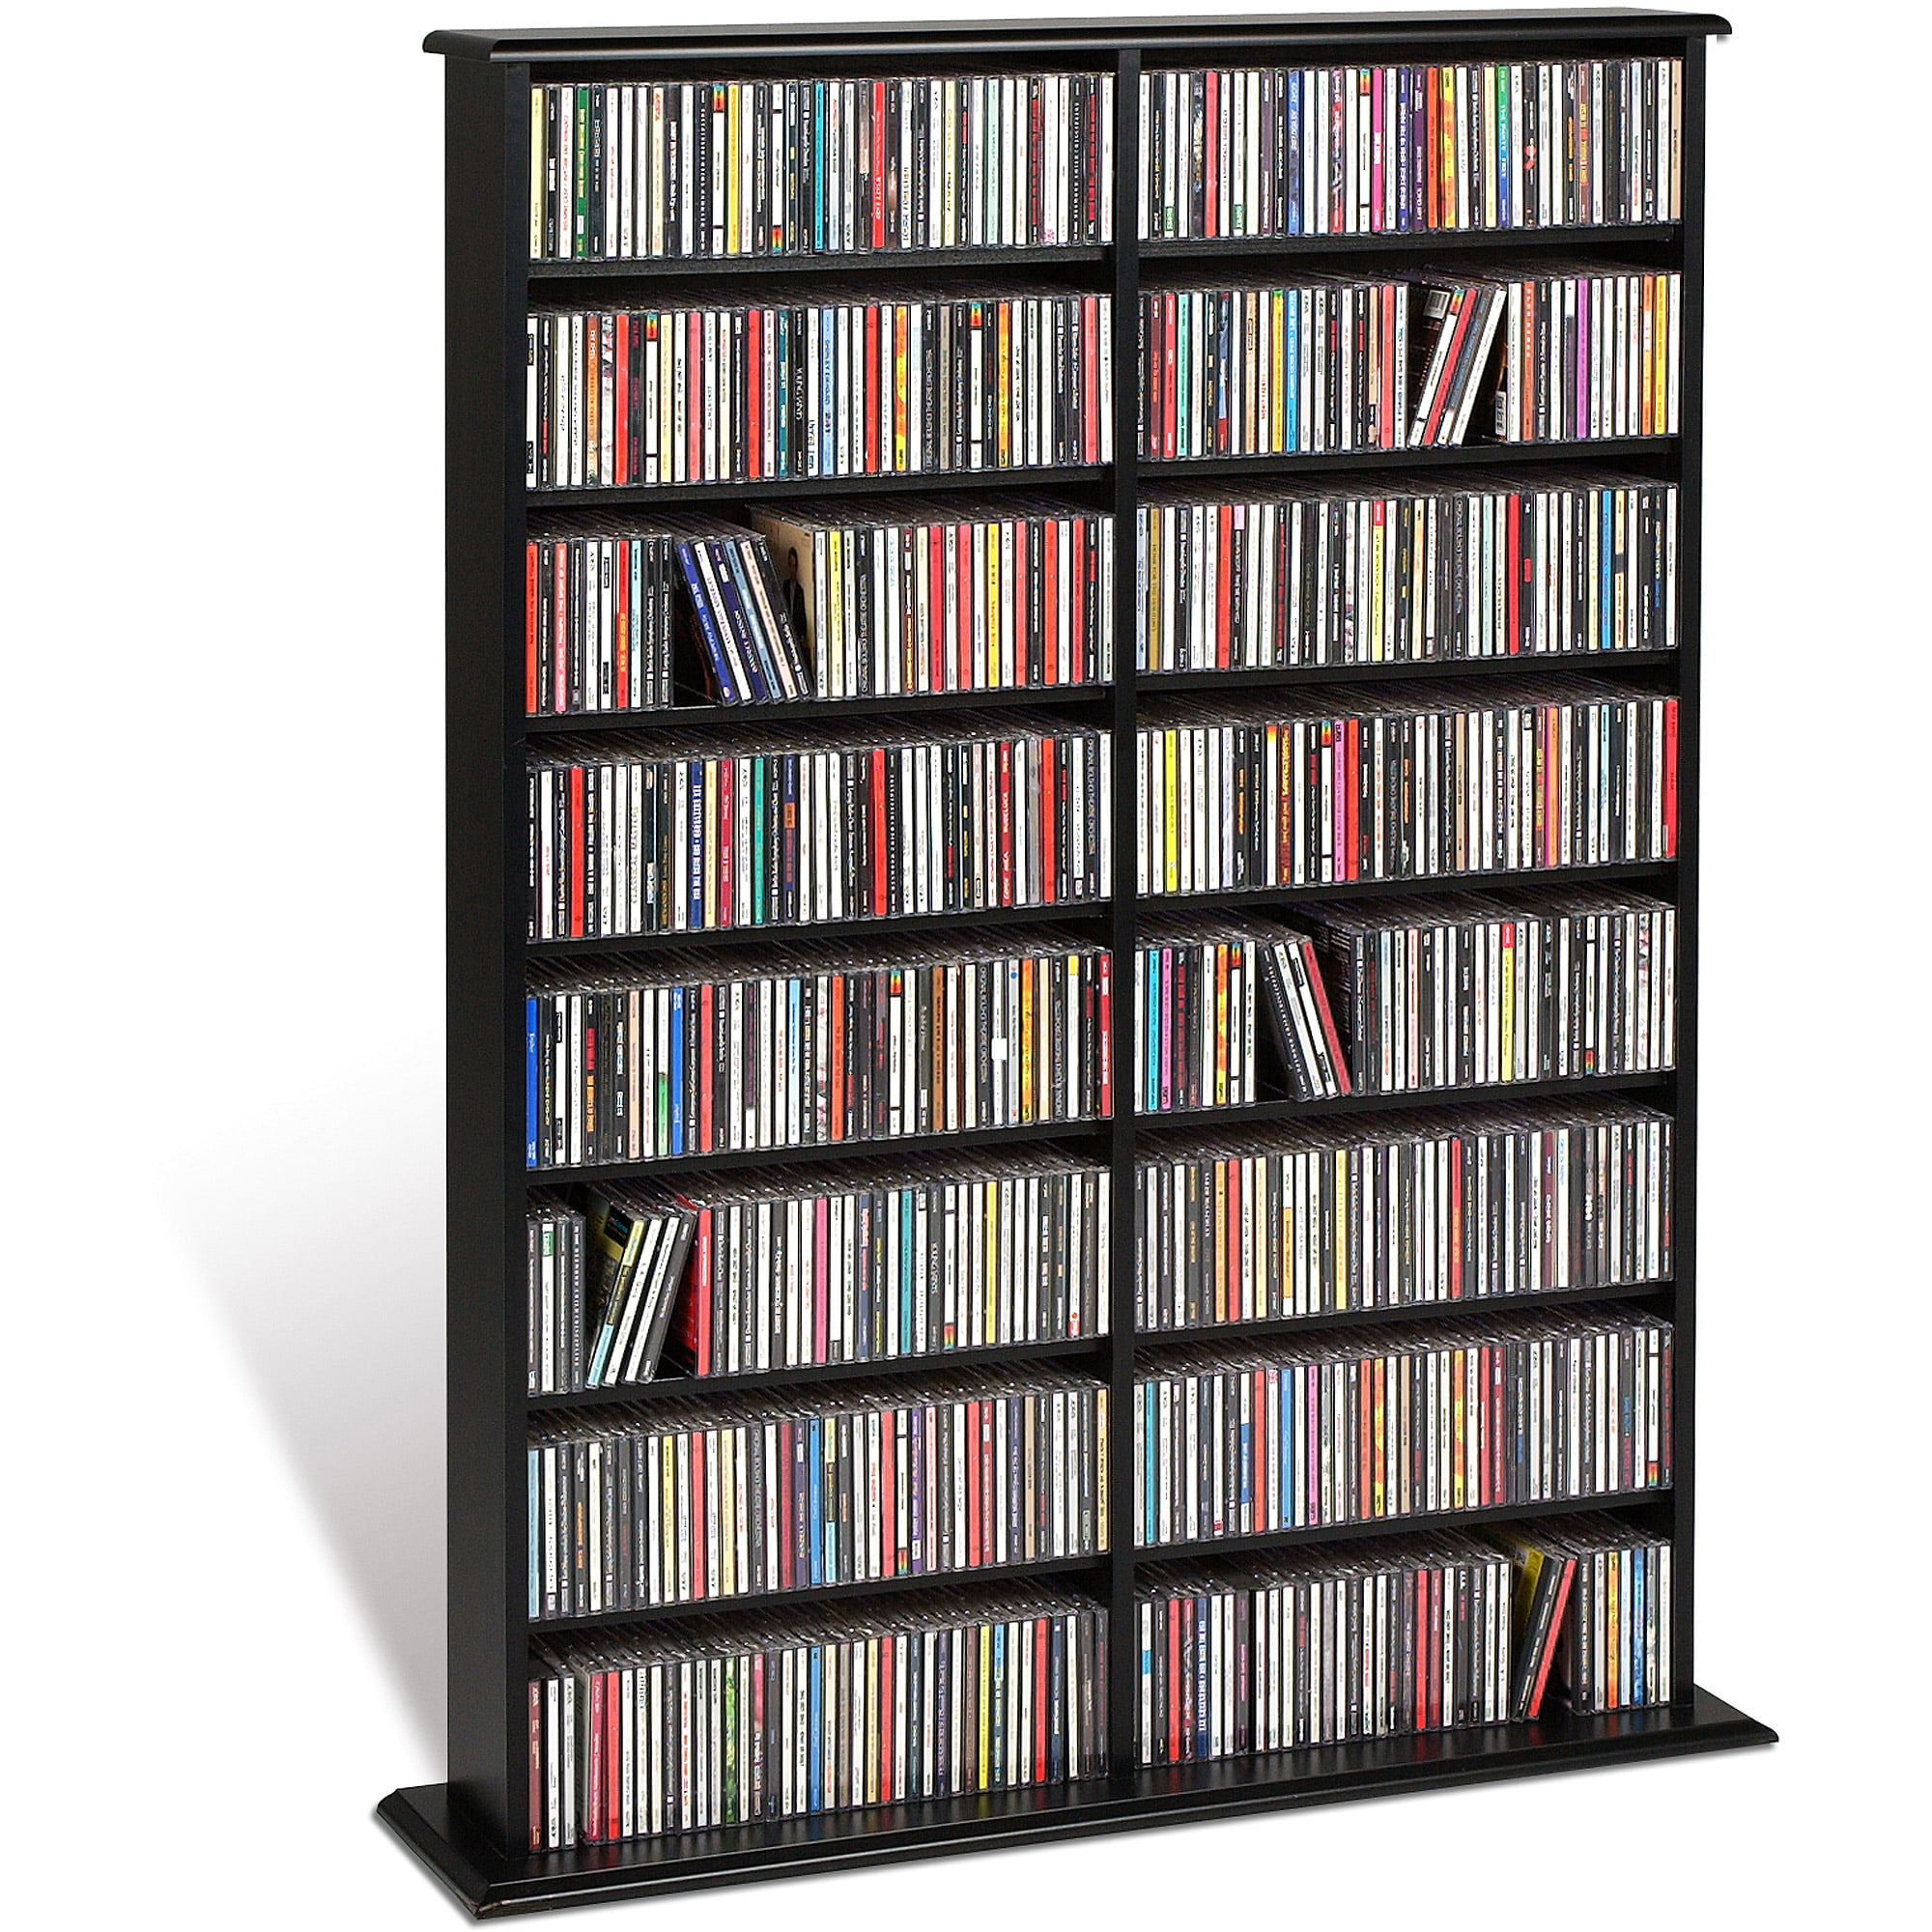 Cherry Wood Dvd Storage Cabinet Cd Dvd Storage Walmartcom Walmartcom